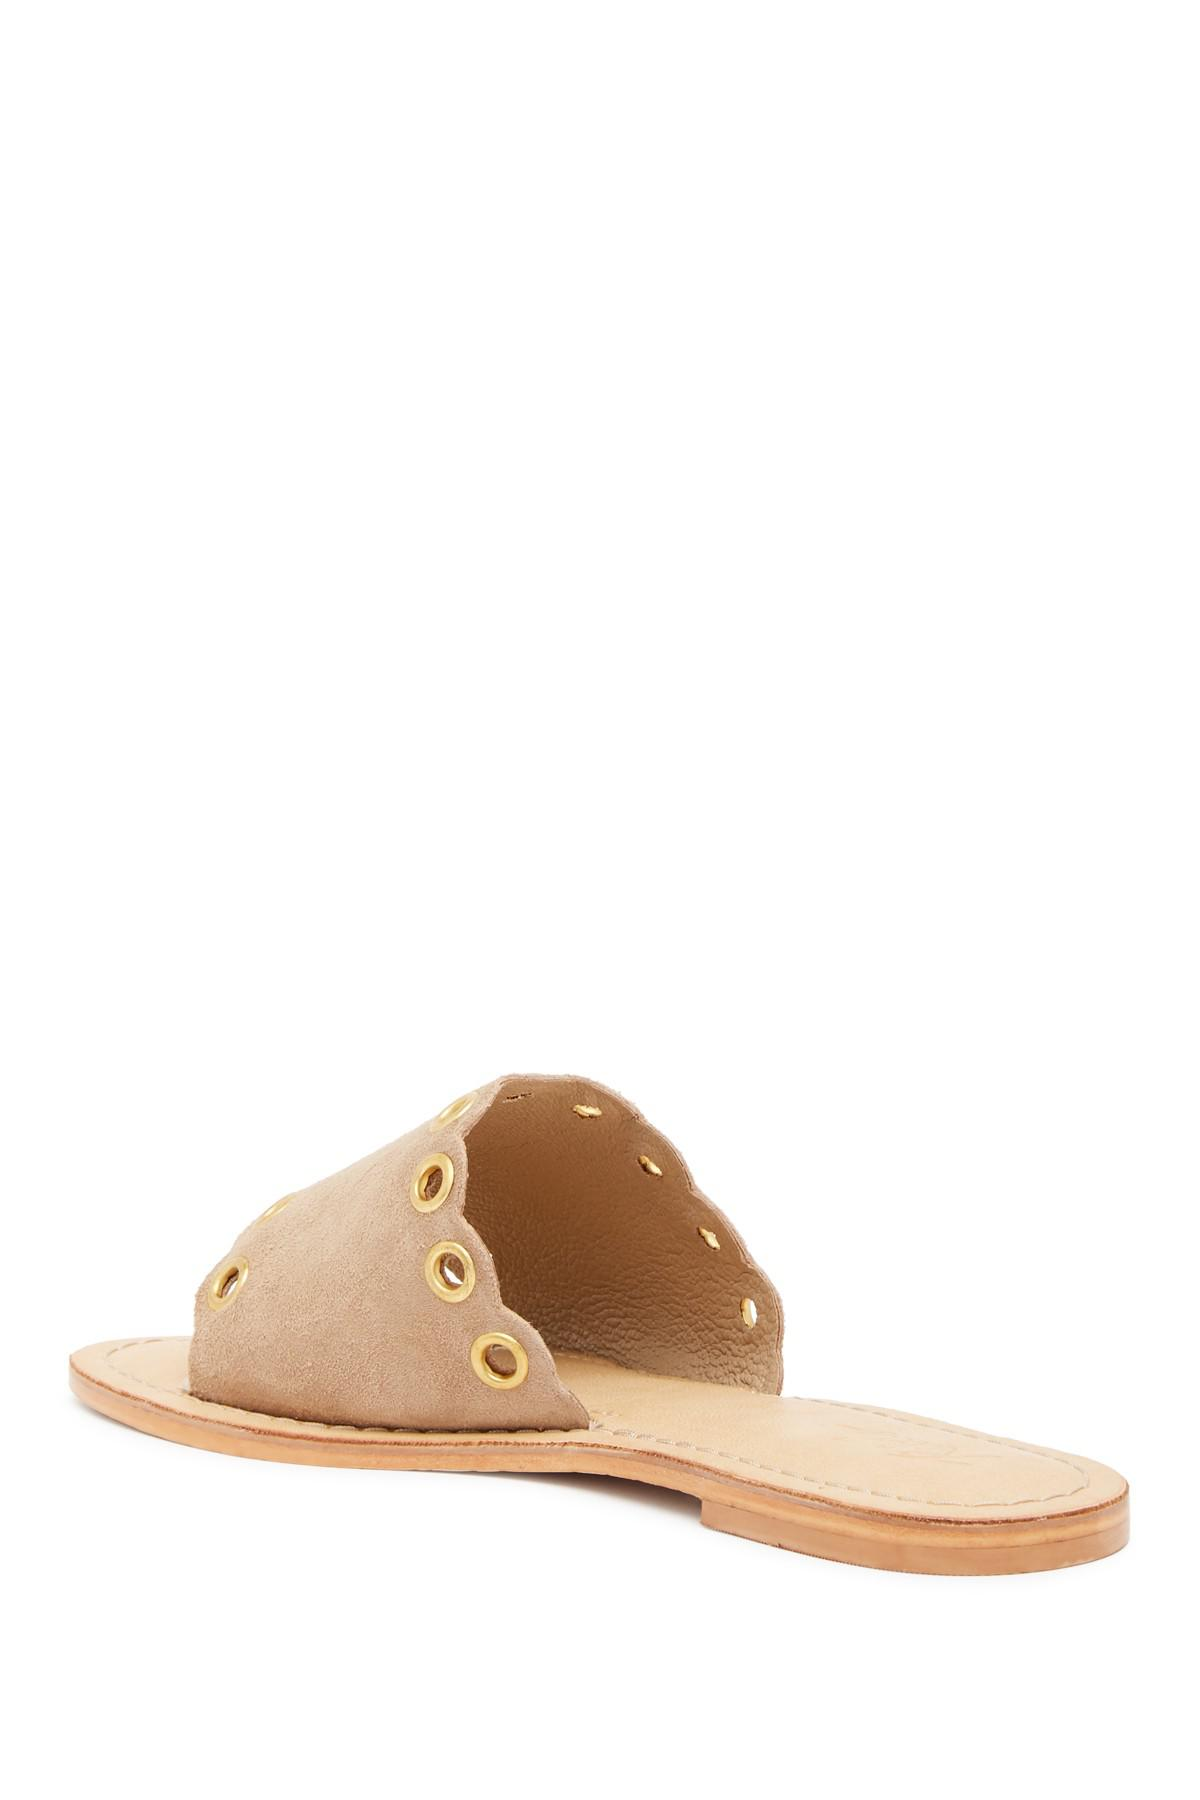 81109de0d787 Rebels - Natural Haley Slide Sandal - Lyst. View fullscreen